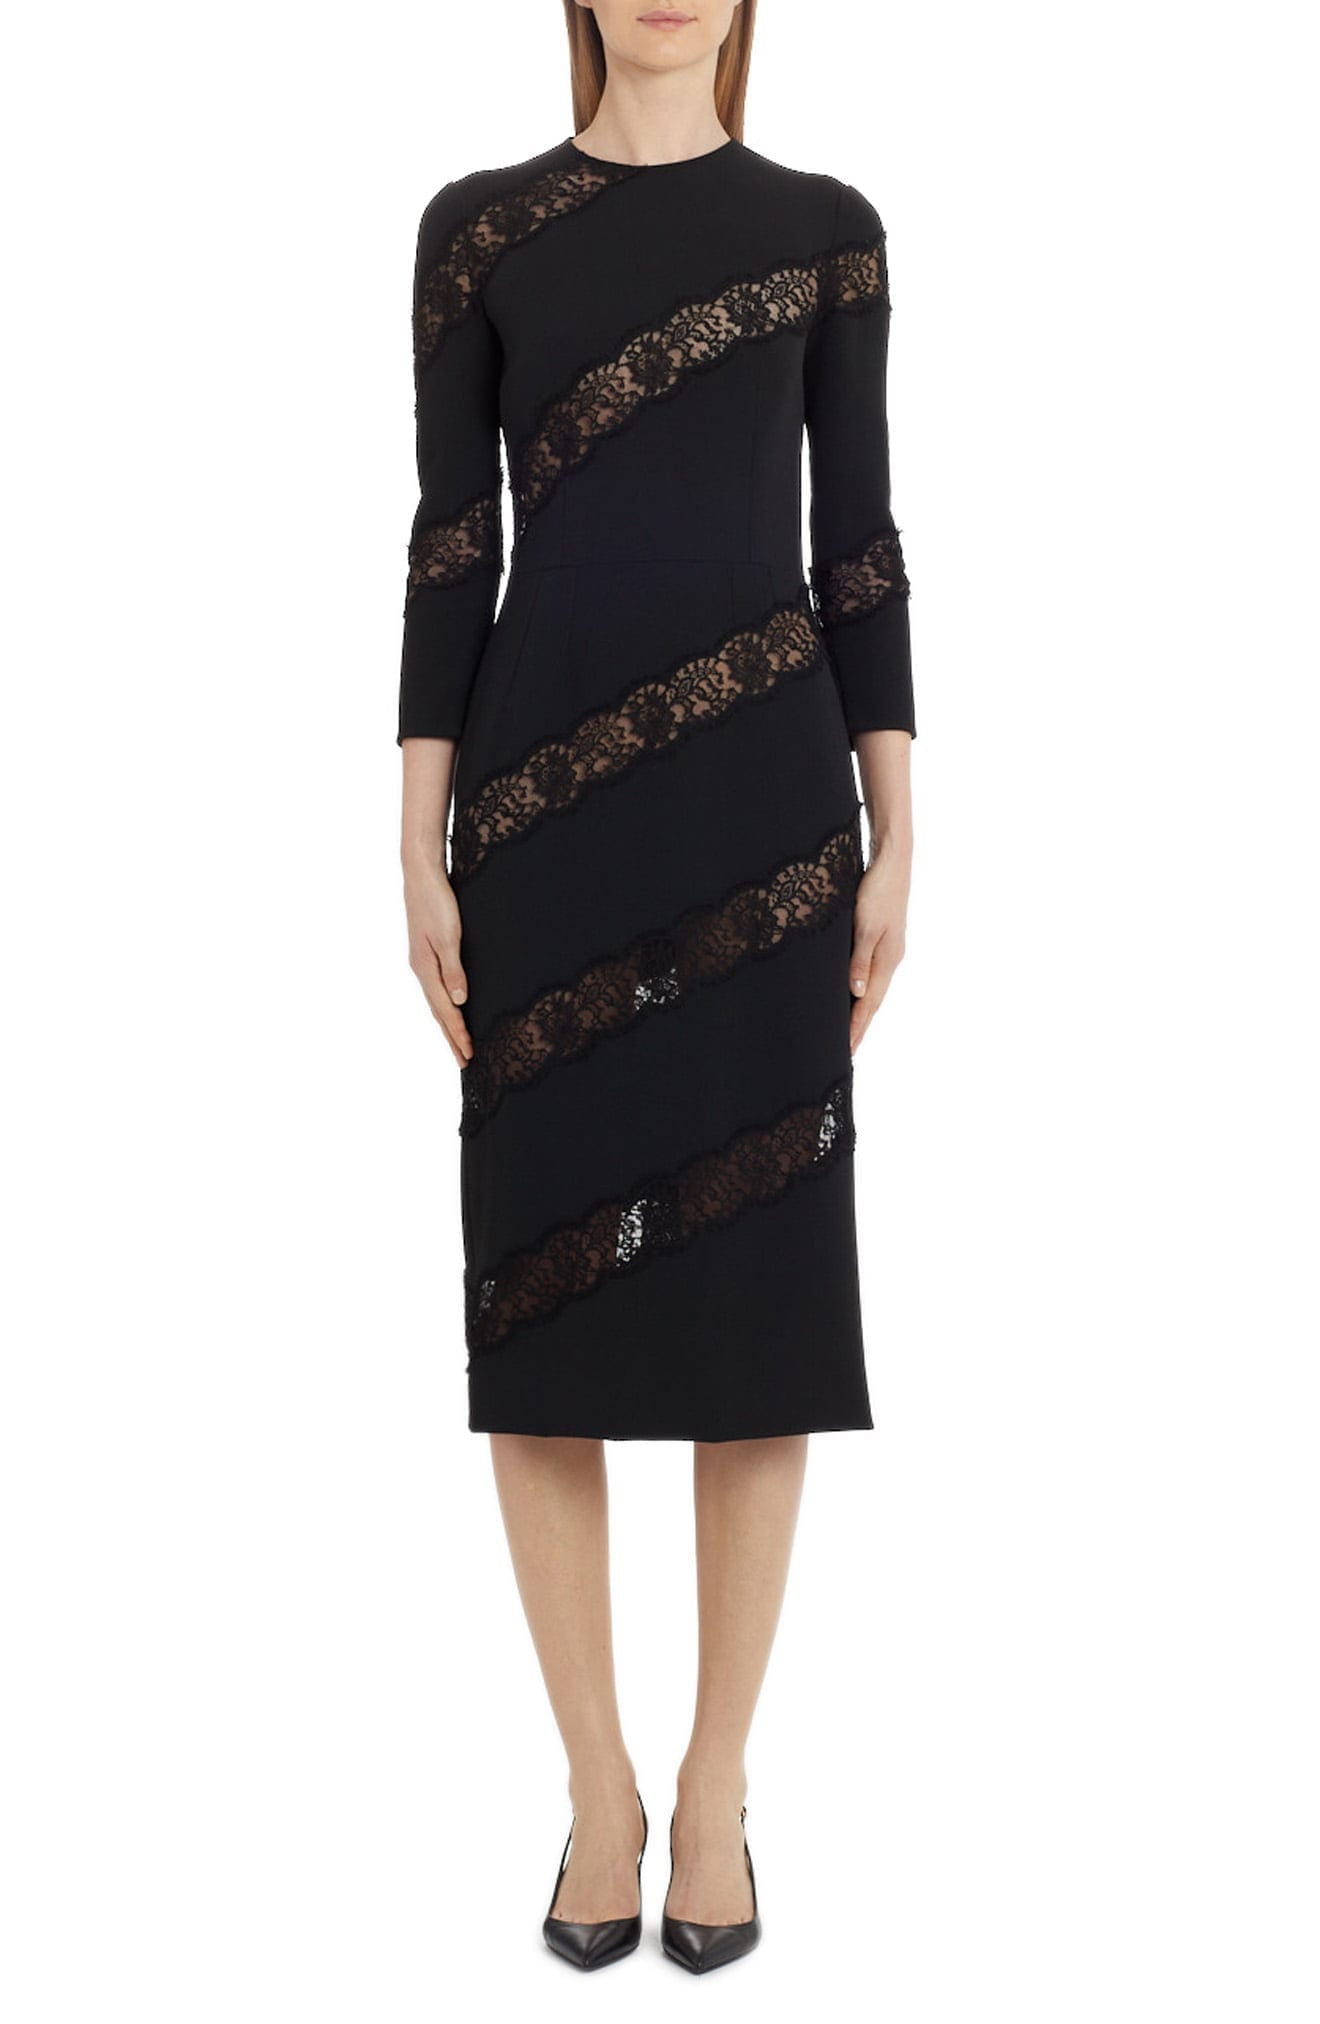 DOLCE&GABBANA Scalloped Lace Inset Midi Dress